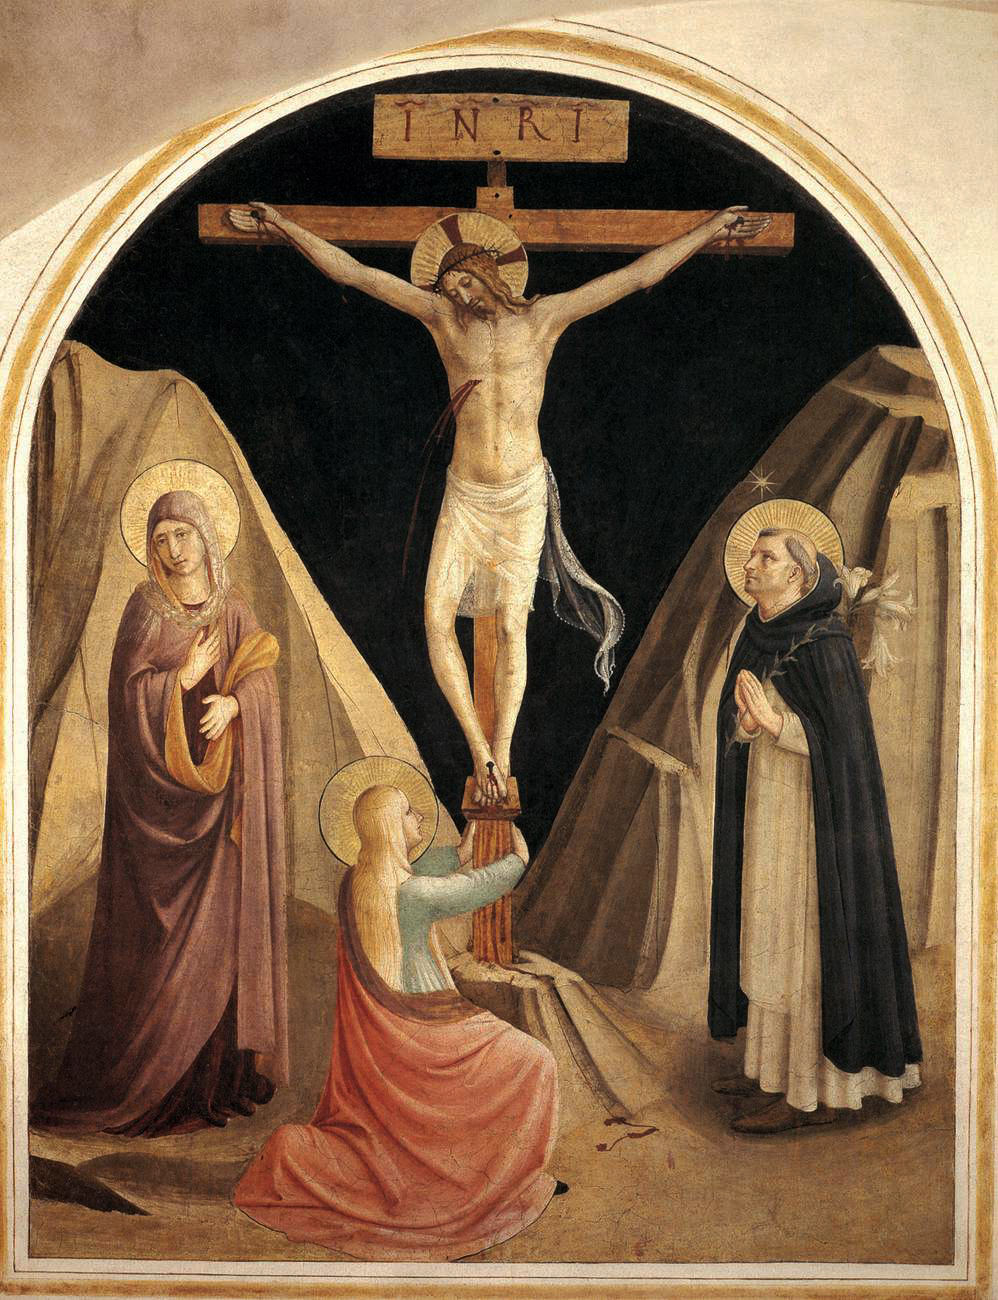 Crucifixion with the Virgin Mary Magdalene and St. Dominic